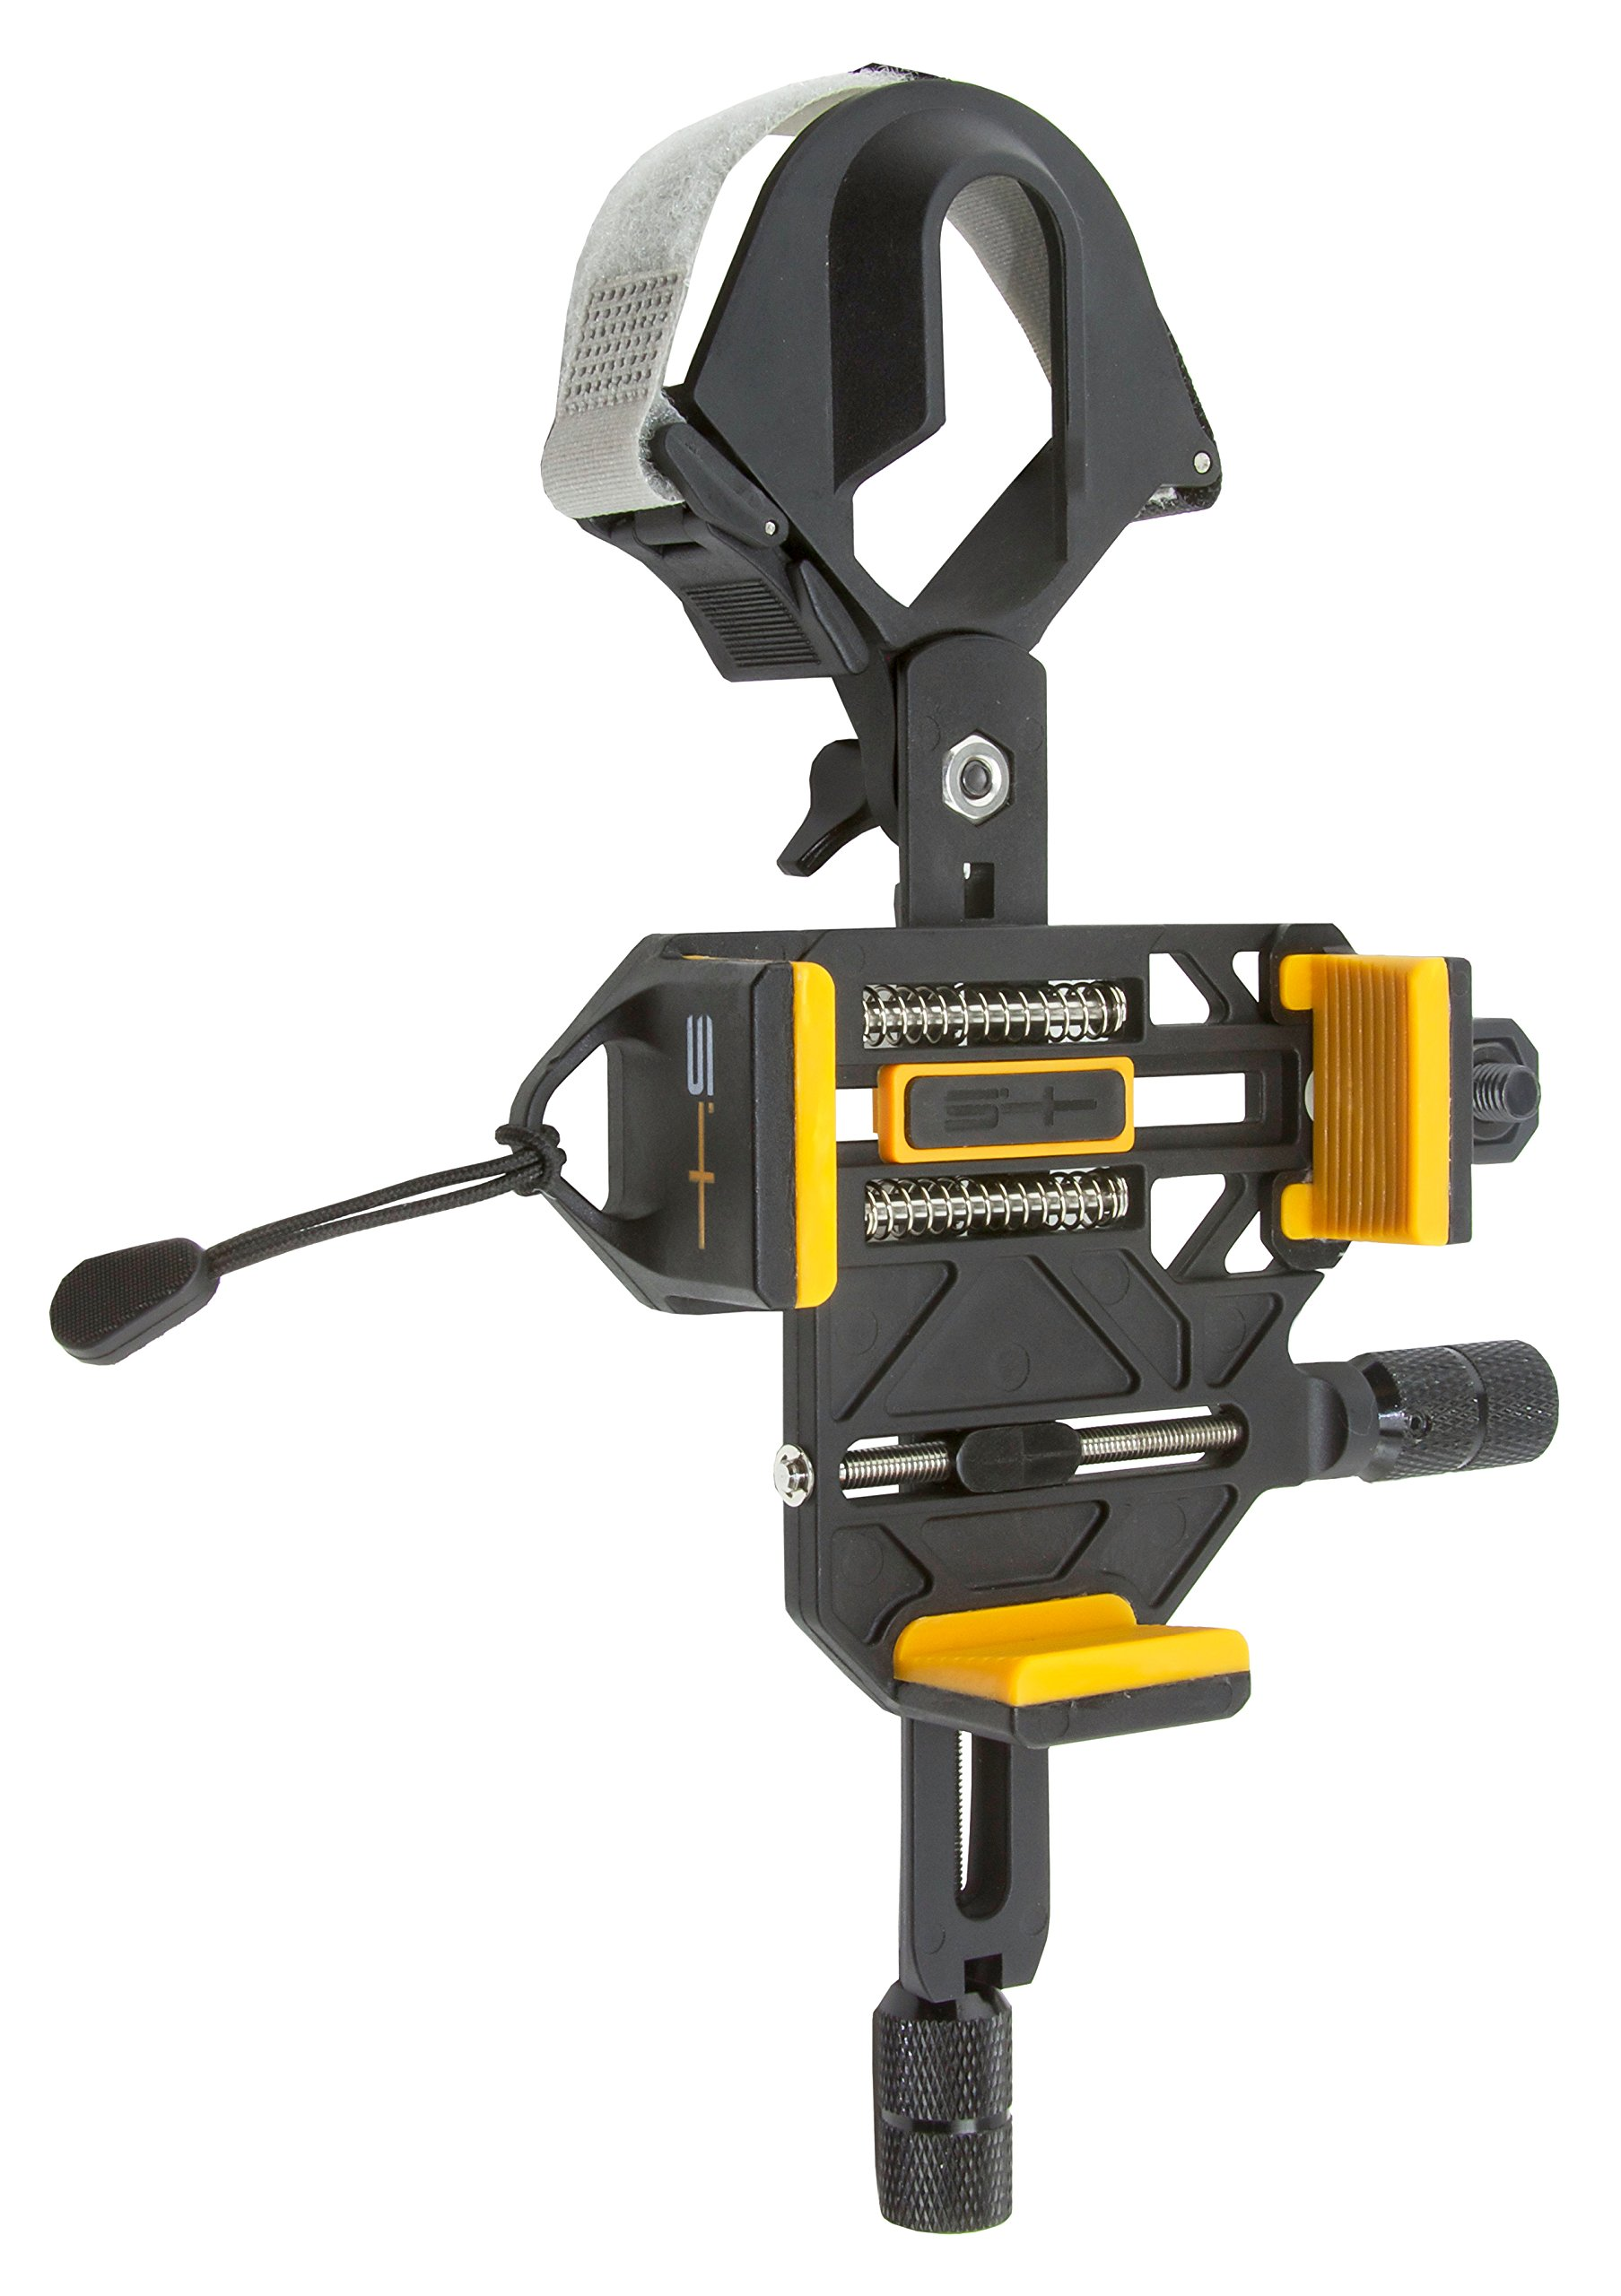 Carbon Express S4 Gear Zoom SVS XL Smartphone Scope Mount for Telescopes, Spotting Scopes and Binoculars - Zoom - Shoot - View - Share!